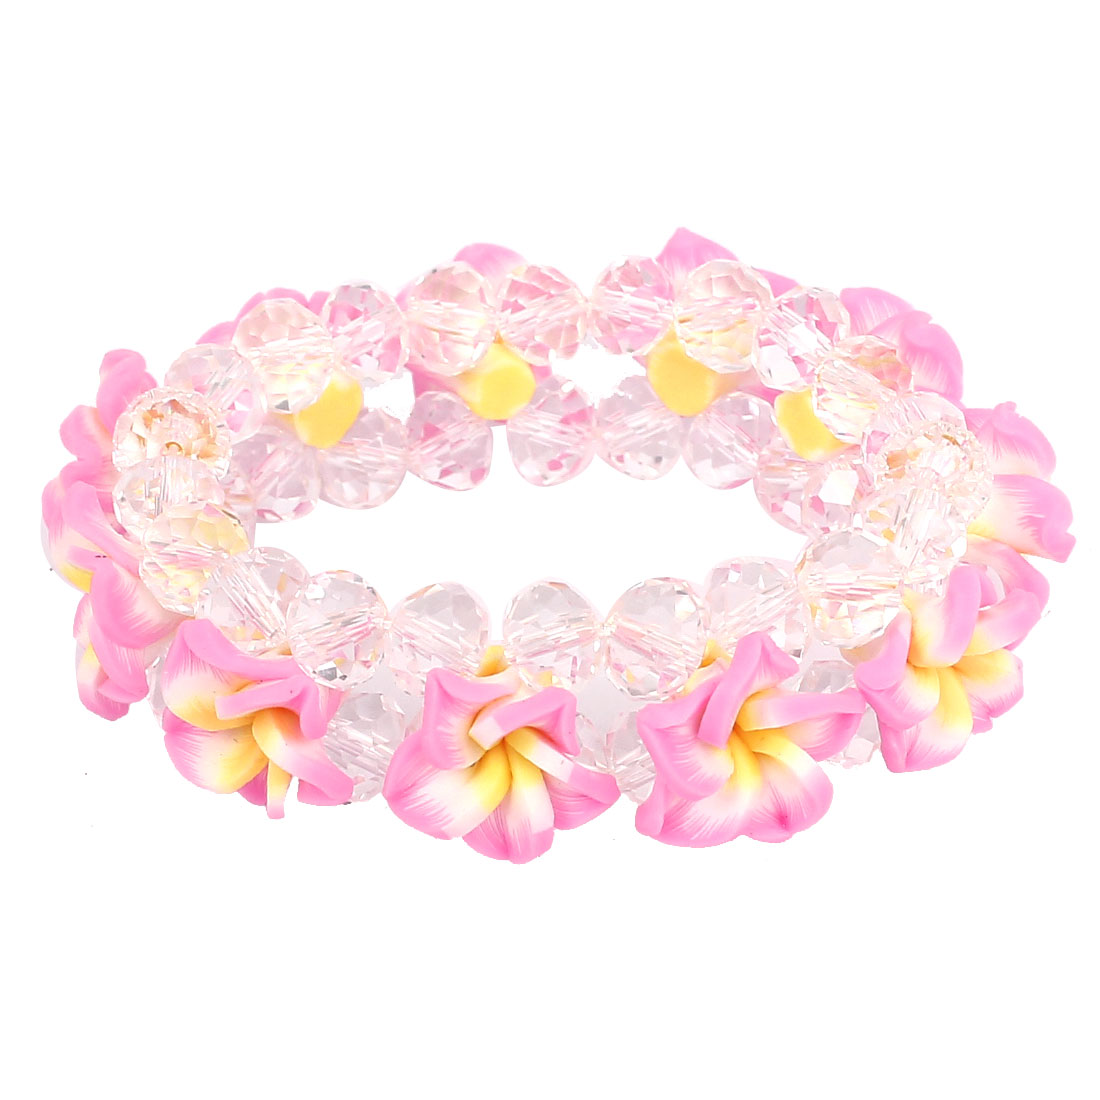 Lady Peony Flower Faux Crystal Inlaid Wrist Chain Bracelet Ornament Pink